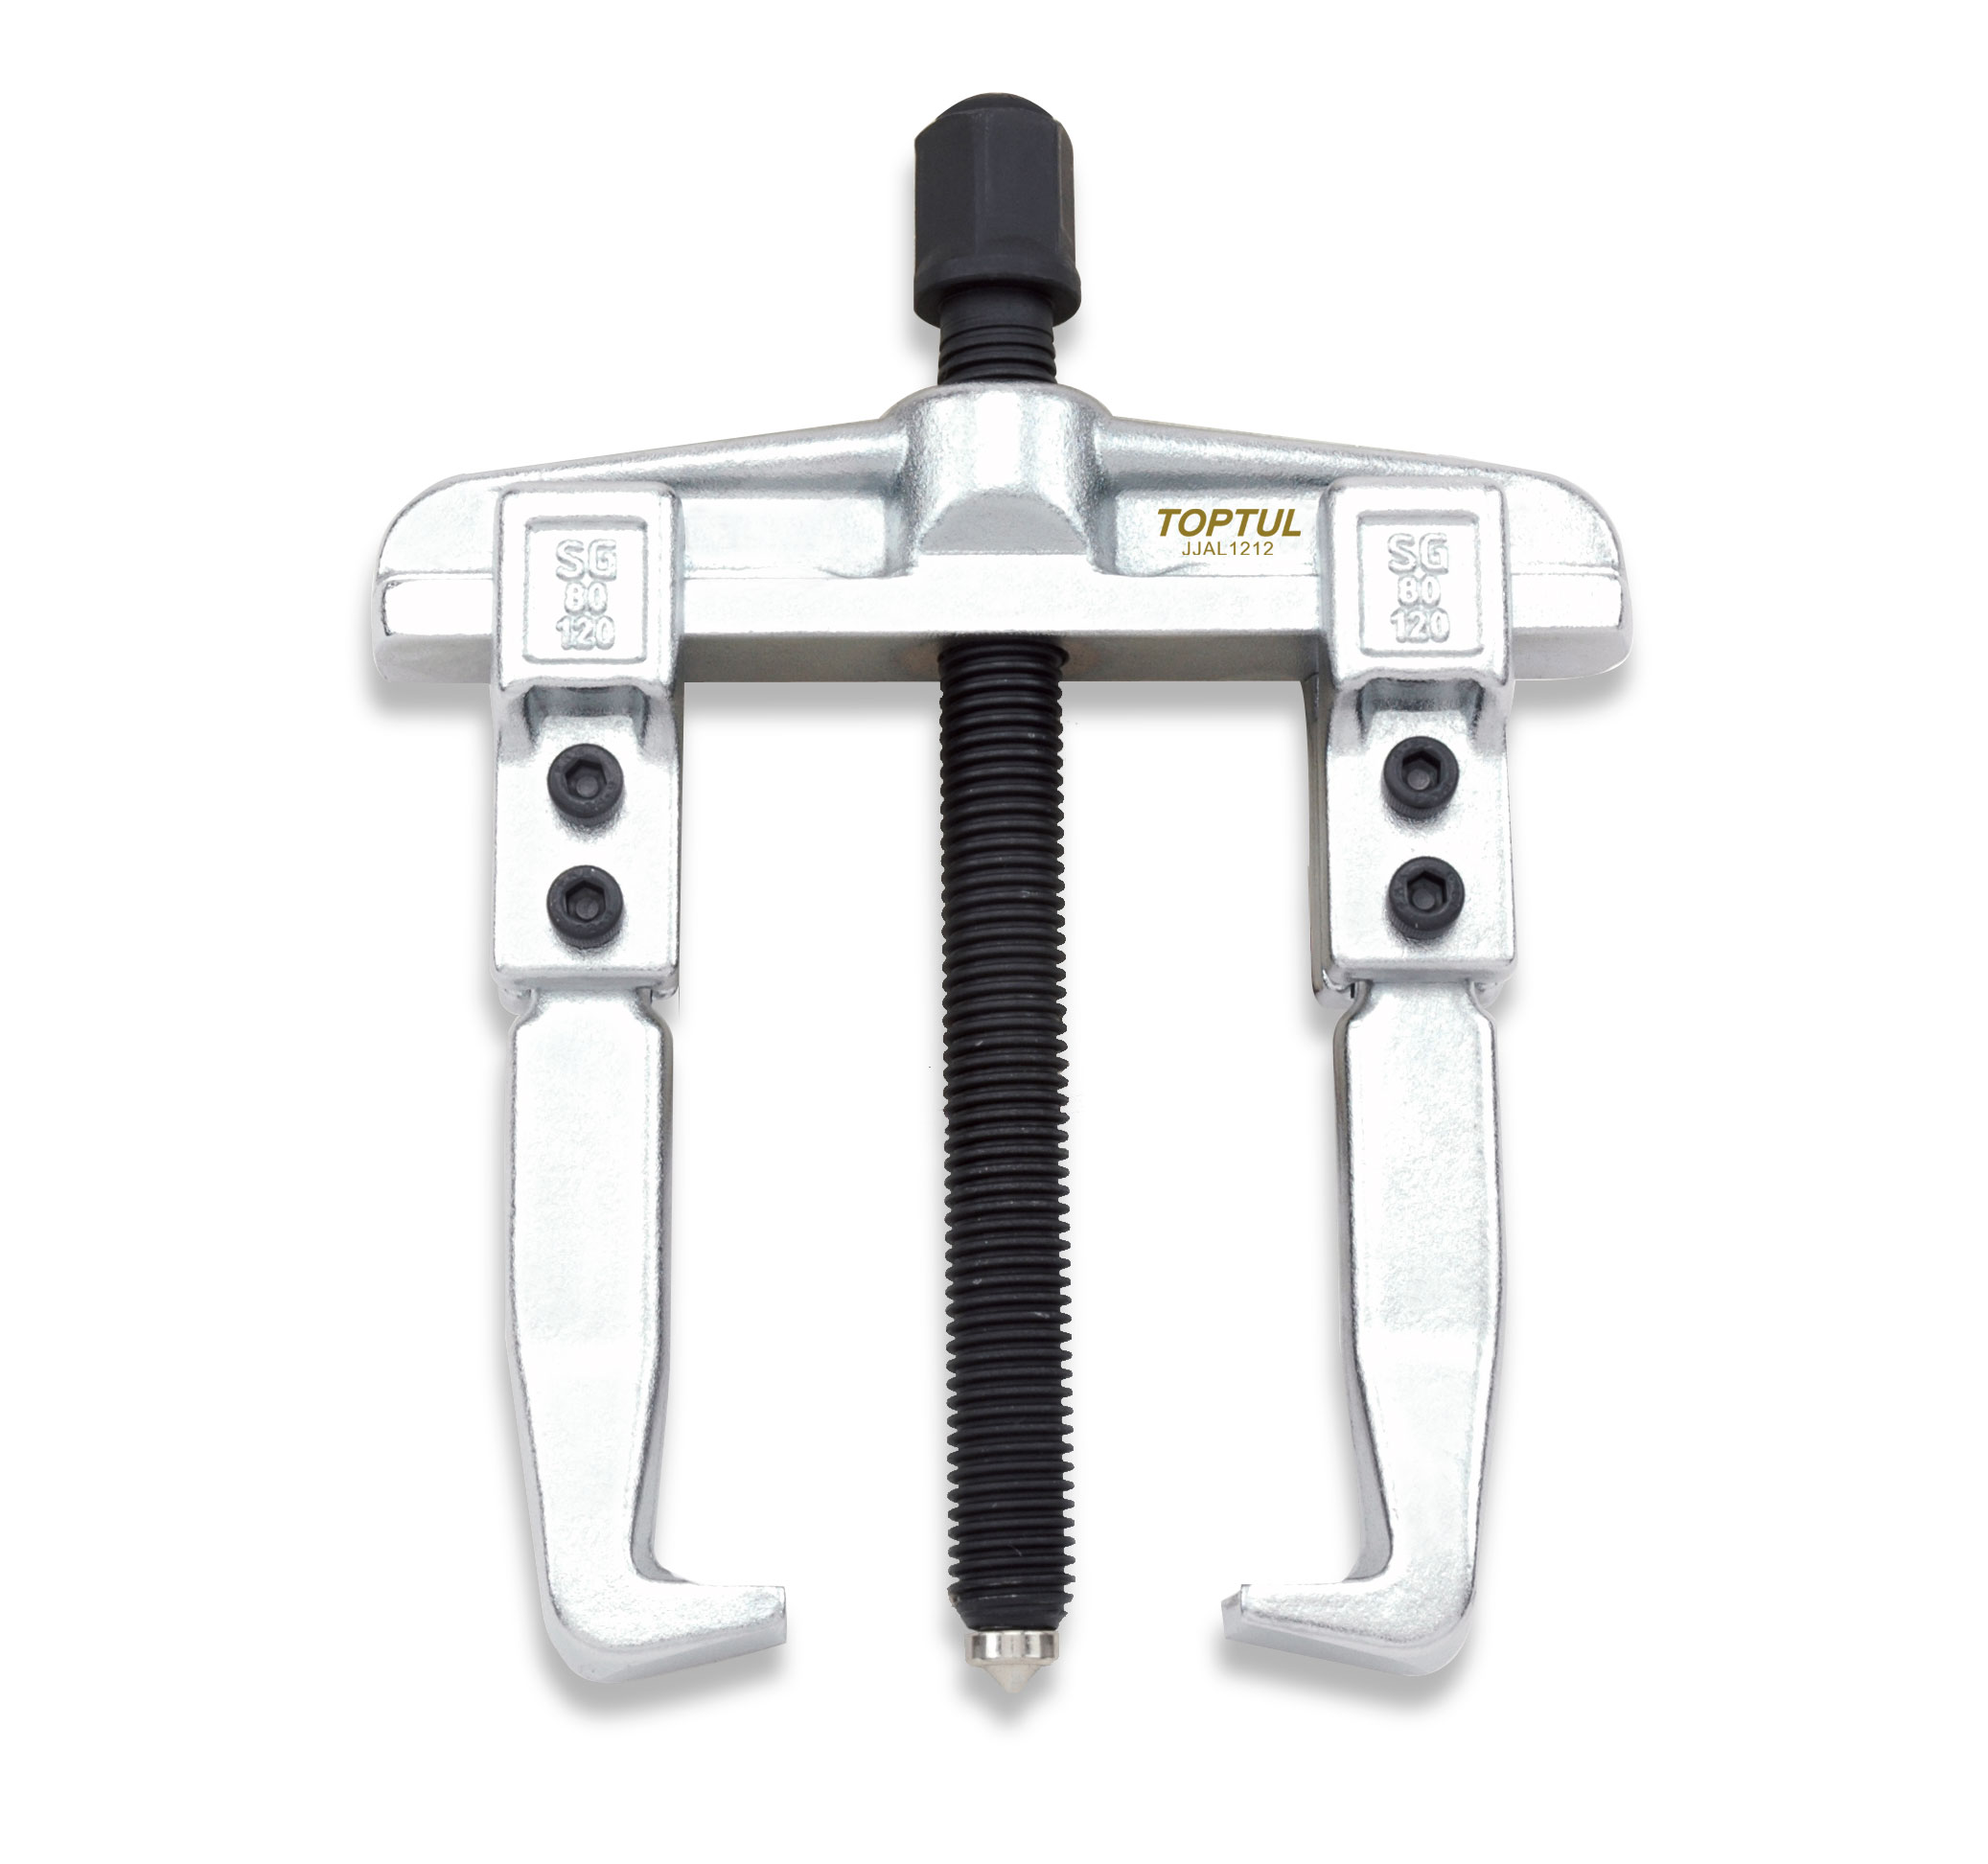 Gear Puller Malaysia : Jaw gear puller sliding arm type jjal malaysia